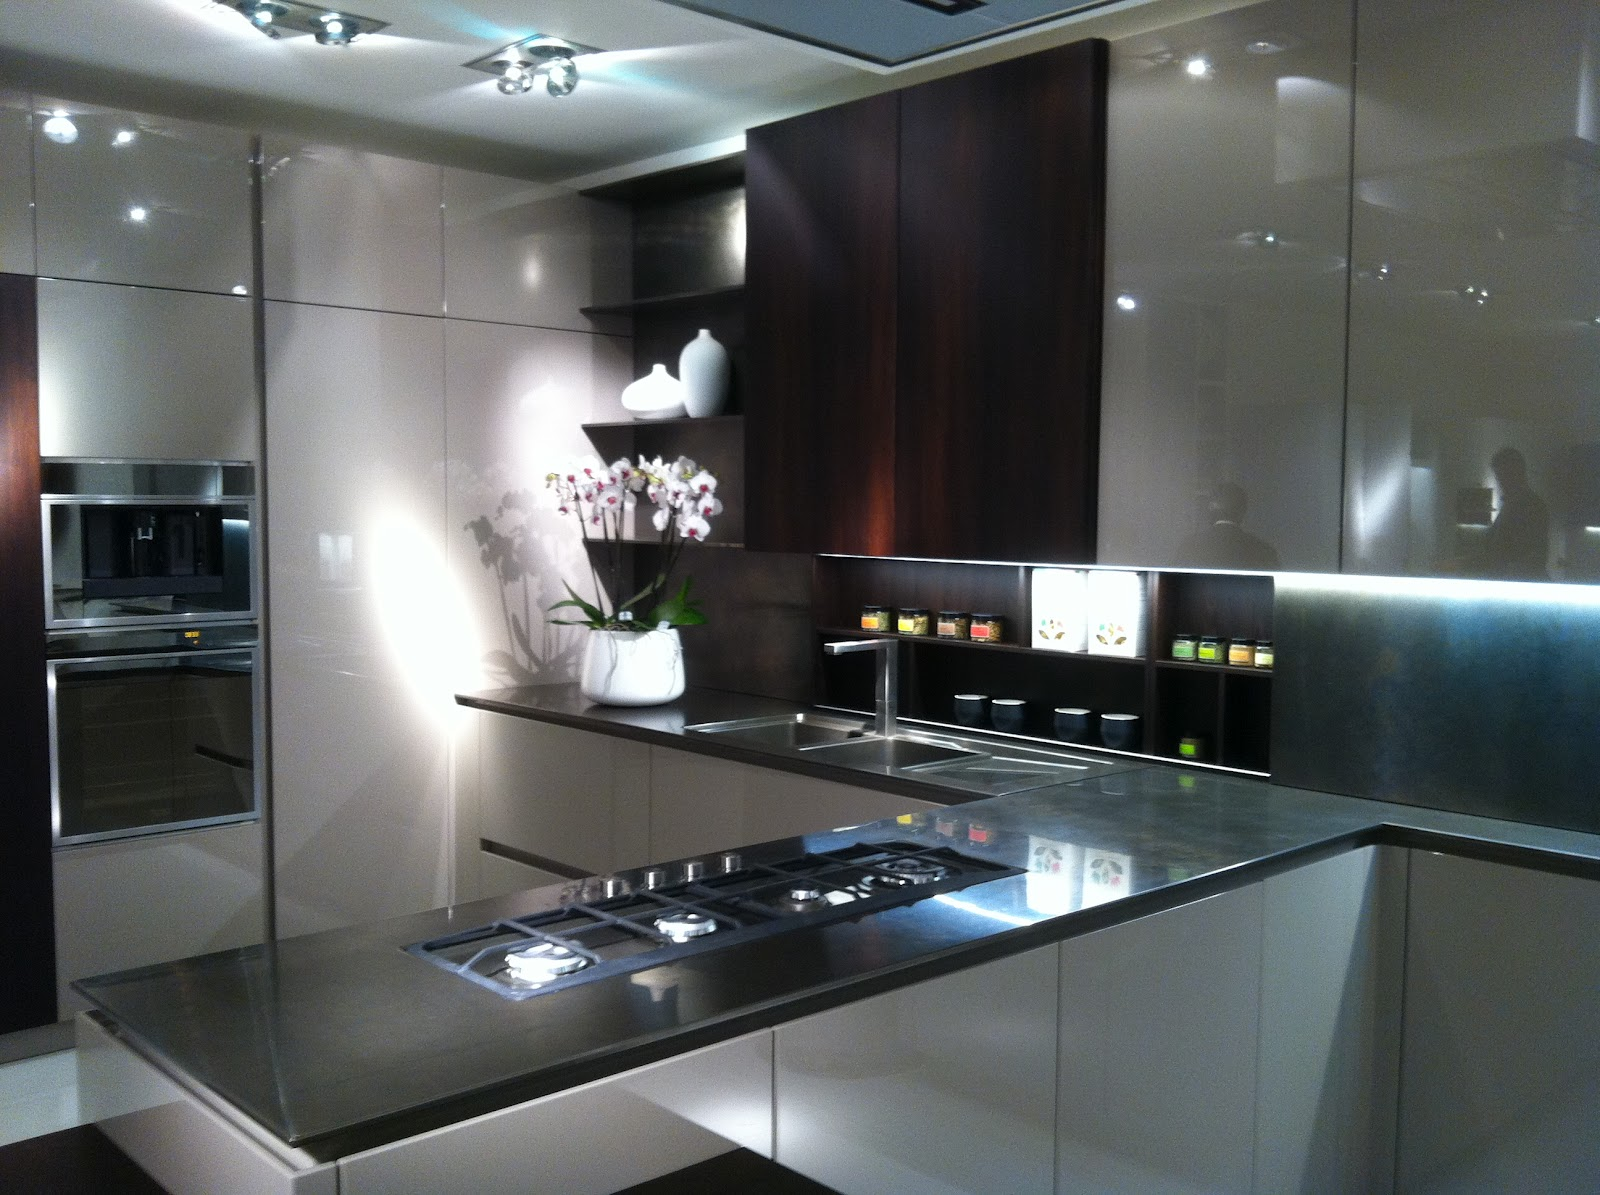 gold notes eurocucina 2012 guest post by cheryl hamilton gray unusual kitchen surfaces shown were concrete chiseled marble recycled paper and thin porcelain slab accent colors were predominantly in the battleship